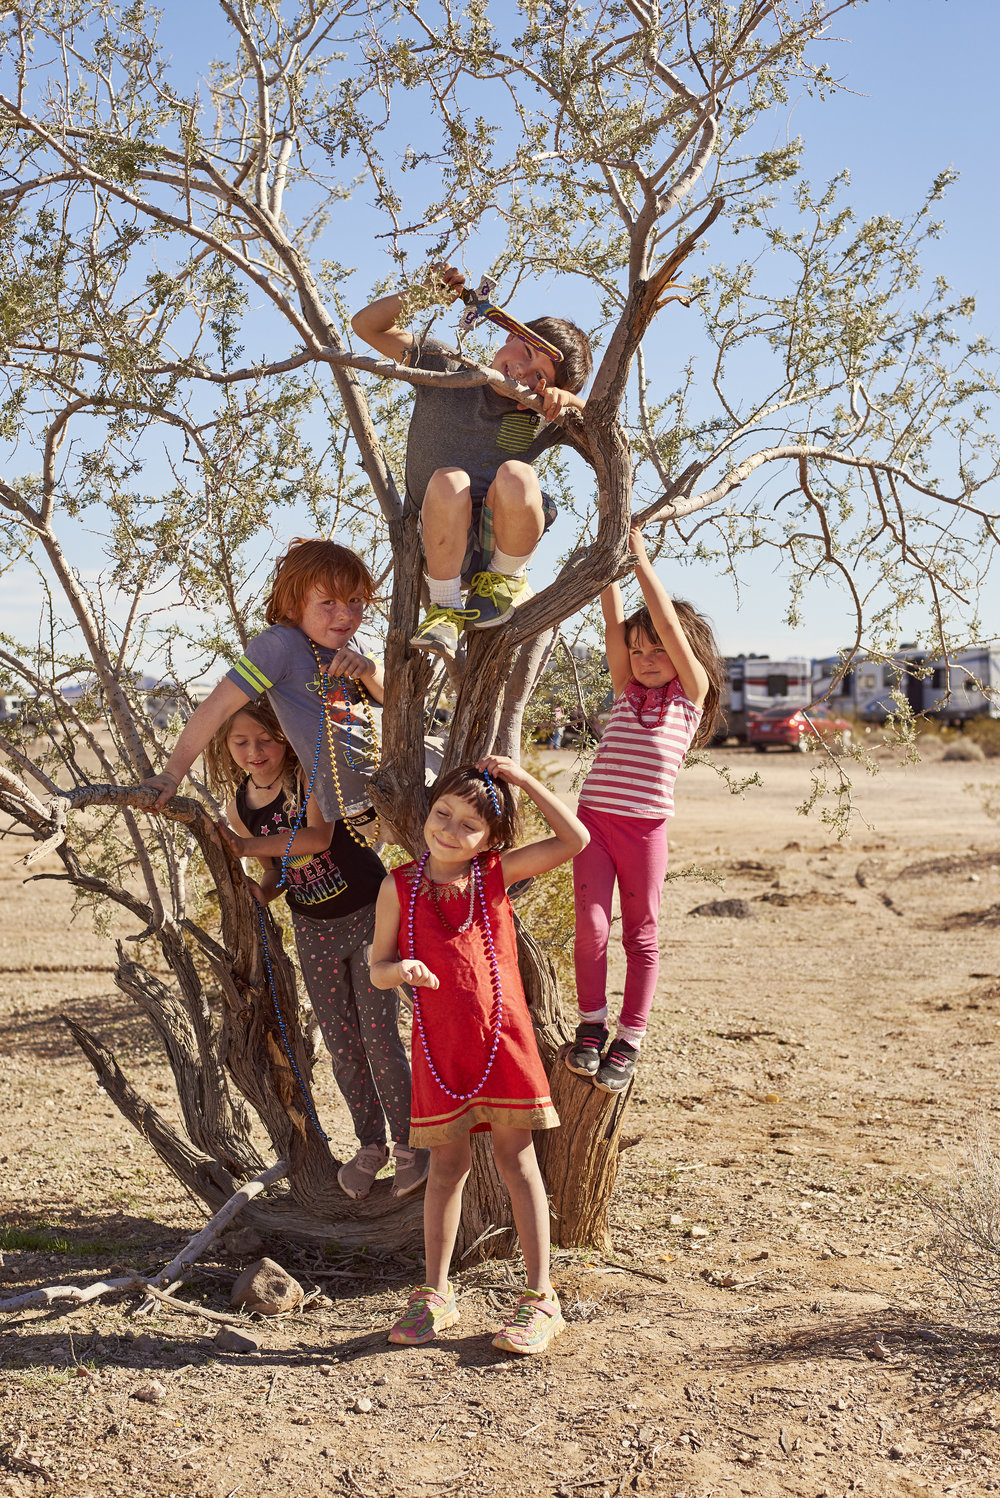 "Feature for LeMonde Magazine FR about ""Snowbirds"" in Arizona. Quartzsite Arizona usually has an official population of around 3,000, but in January, the city can accommodate more than 150,000 people and between October and March, it sees nearly a million and a half of residents that are more or less temporary. The city and its dozens of BLM campsites and the desert around form a temporary community. The thousands of motorhomes, vans, busses and caravans of the so-called ""snowbirds,"" who are often retired and escaping harsh winters in the mid-west and Canada. An added benefit of traveling south for winter is that these often retired snowbirds can head a couple hours further south to Los Algodones Mexico, where they can receive dental, medical procedures and pharmaceuticals at a fraction of U.S. prices"